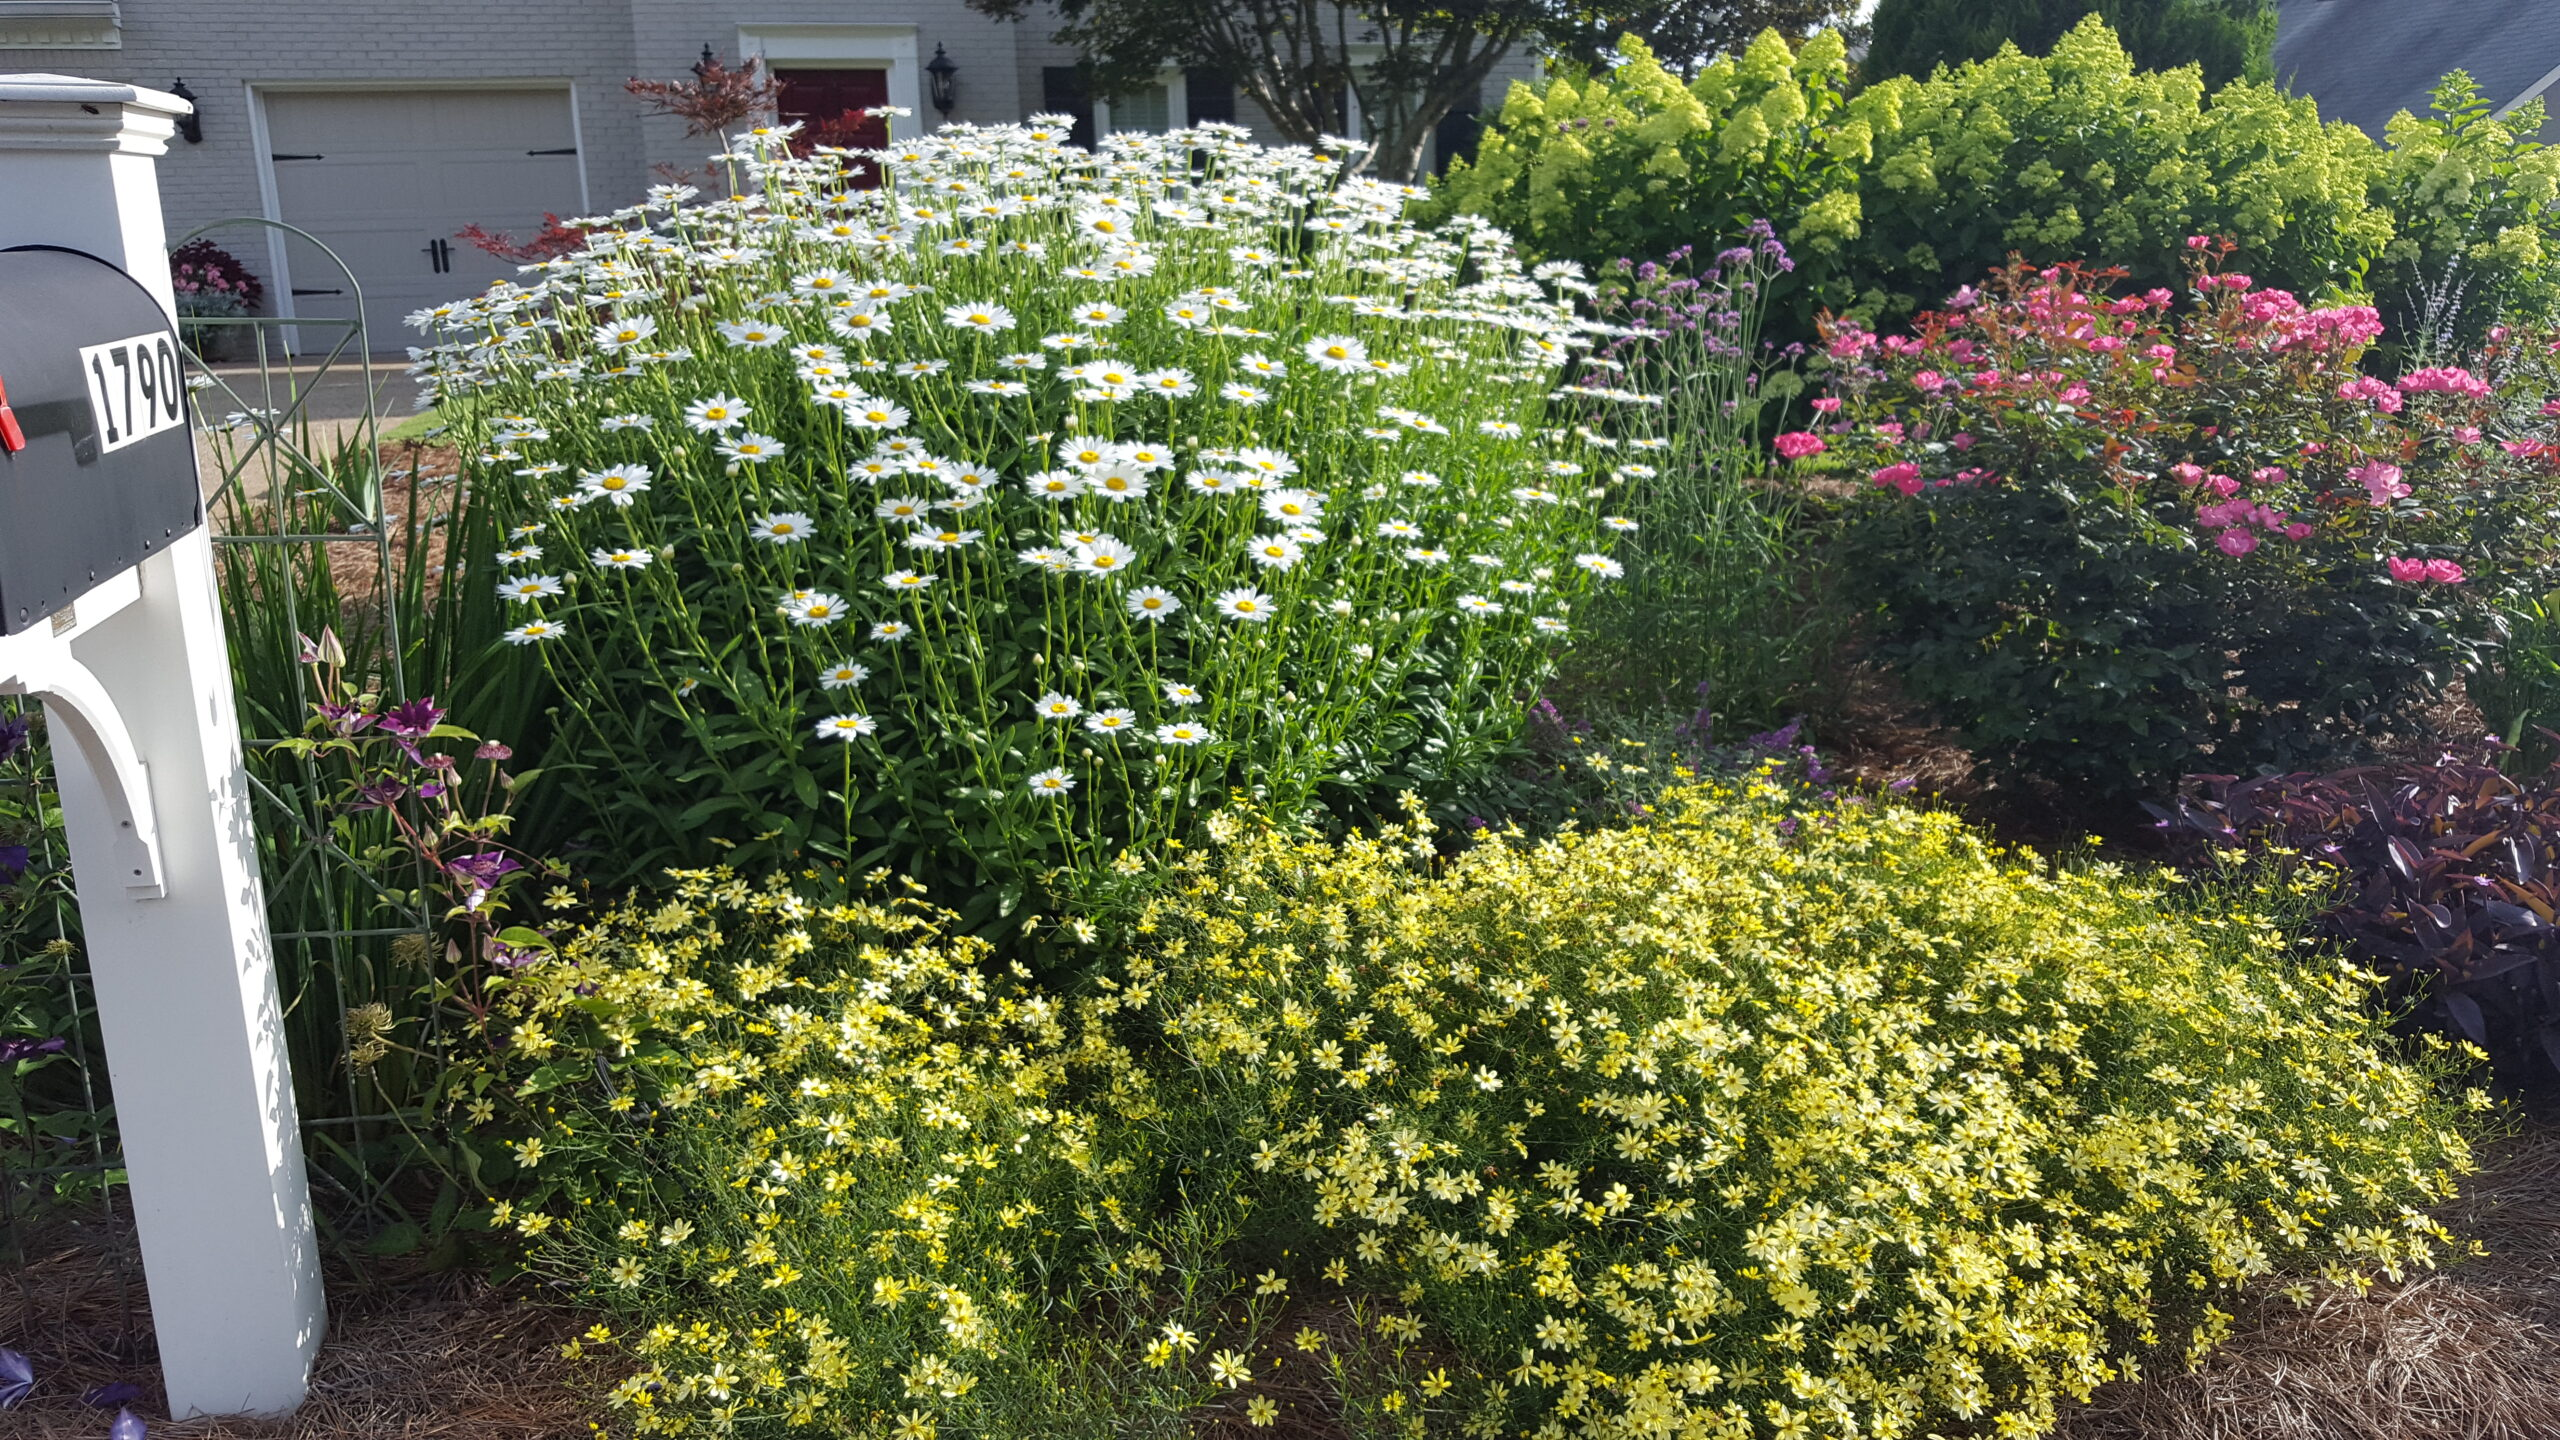 White and yellow daisies growing together